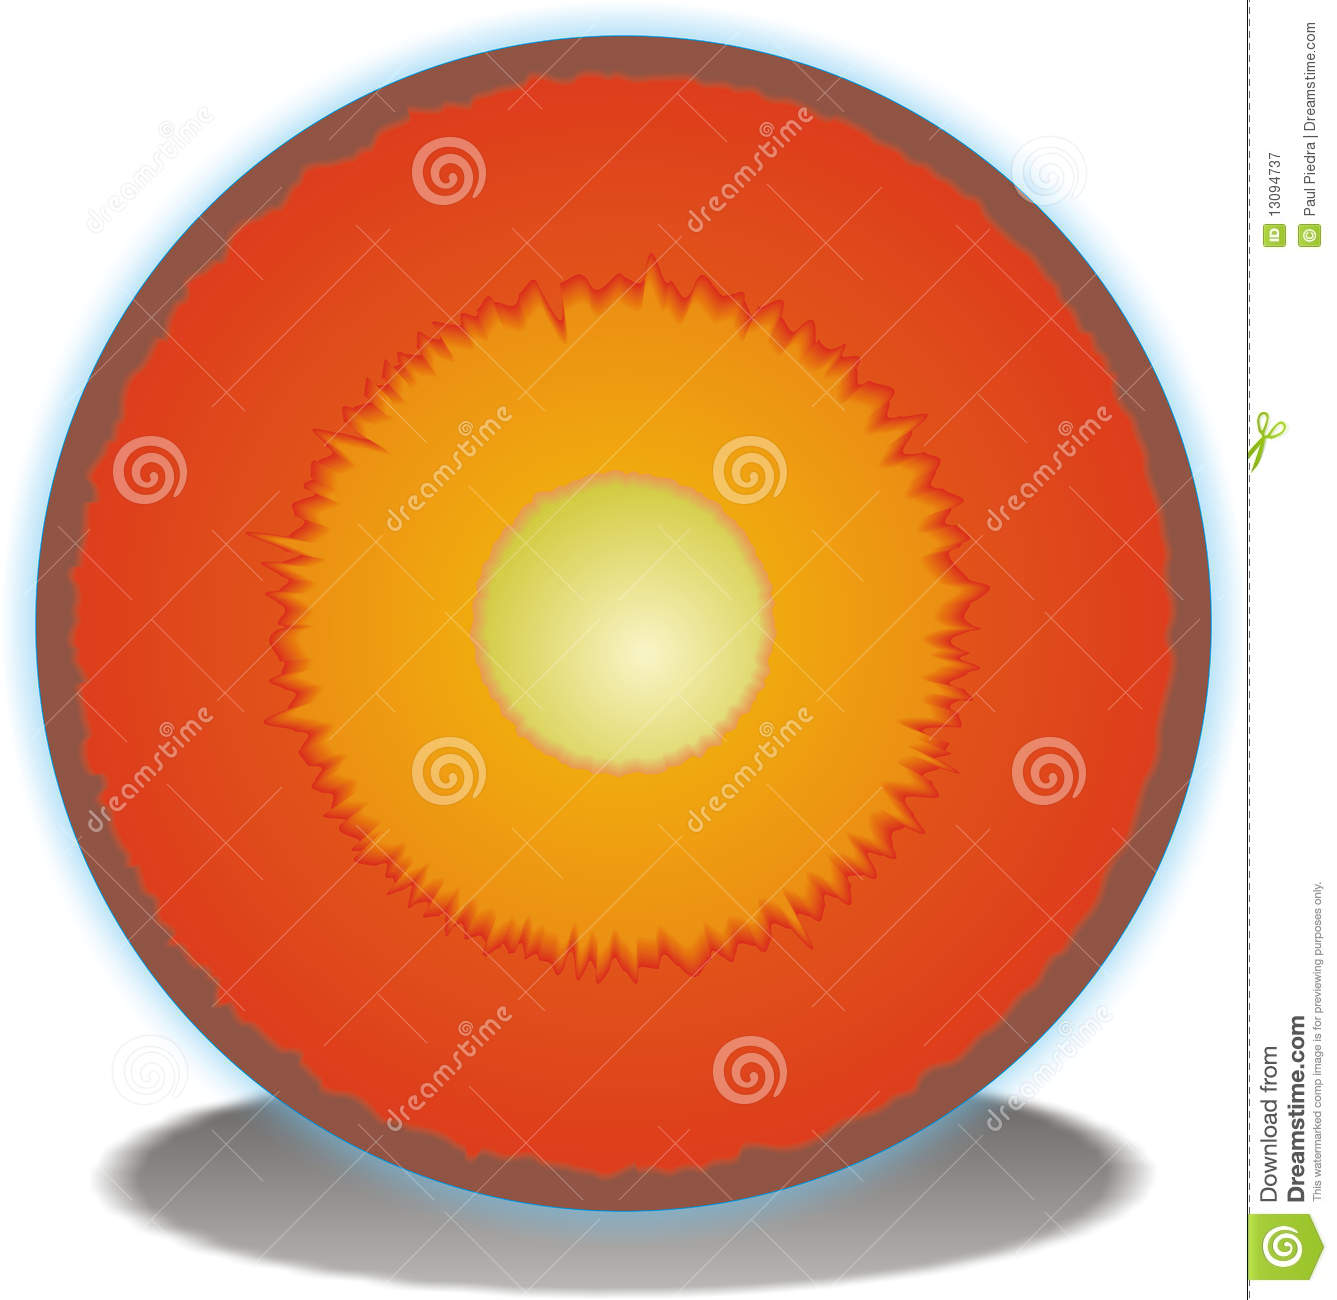 Cross Section Of Earths Core Stock Vector